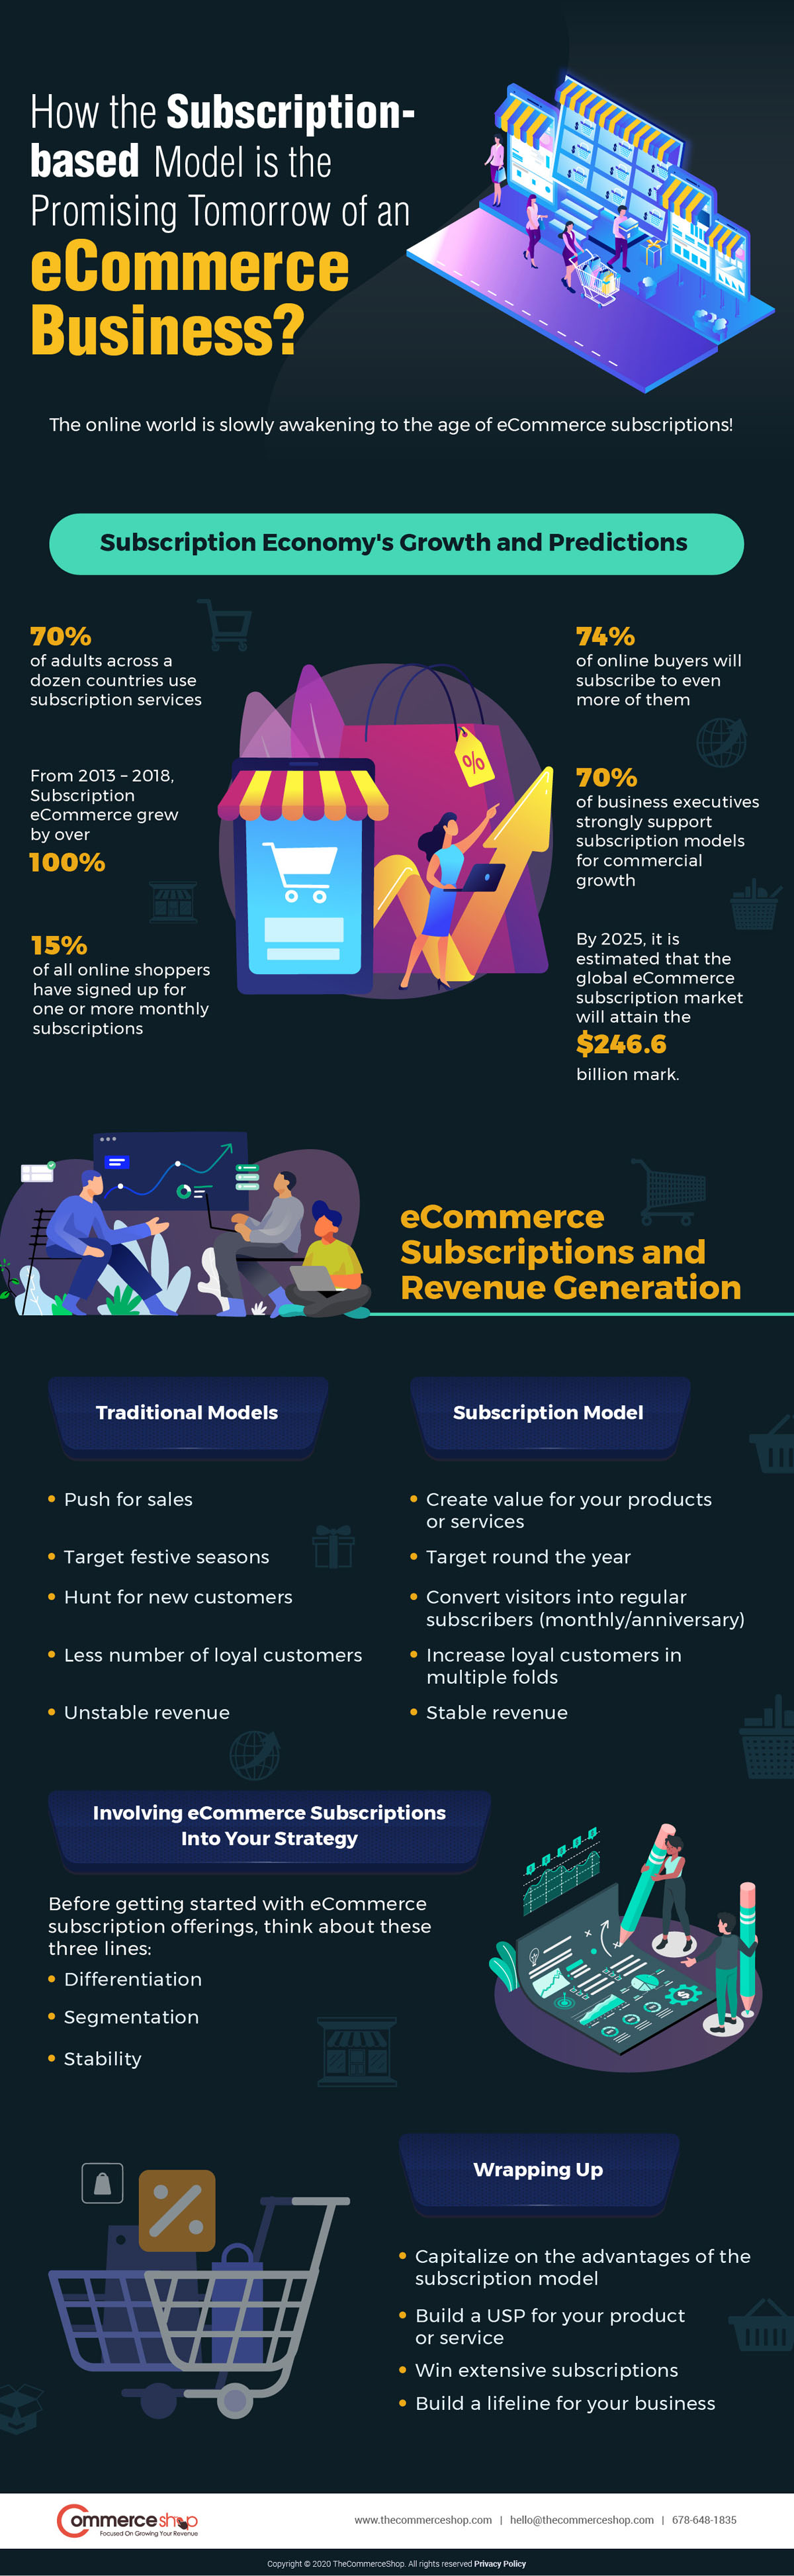 How the Subscription-Based Model is the Promising Tomorrow of eCommerce